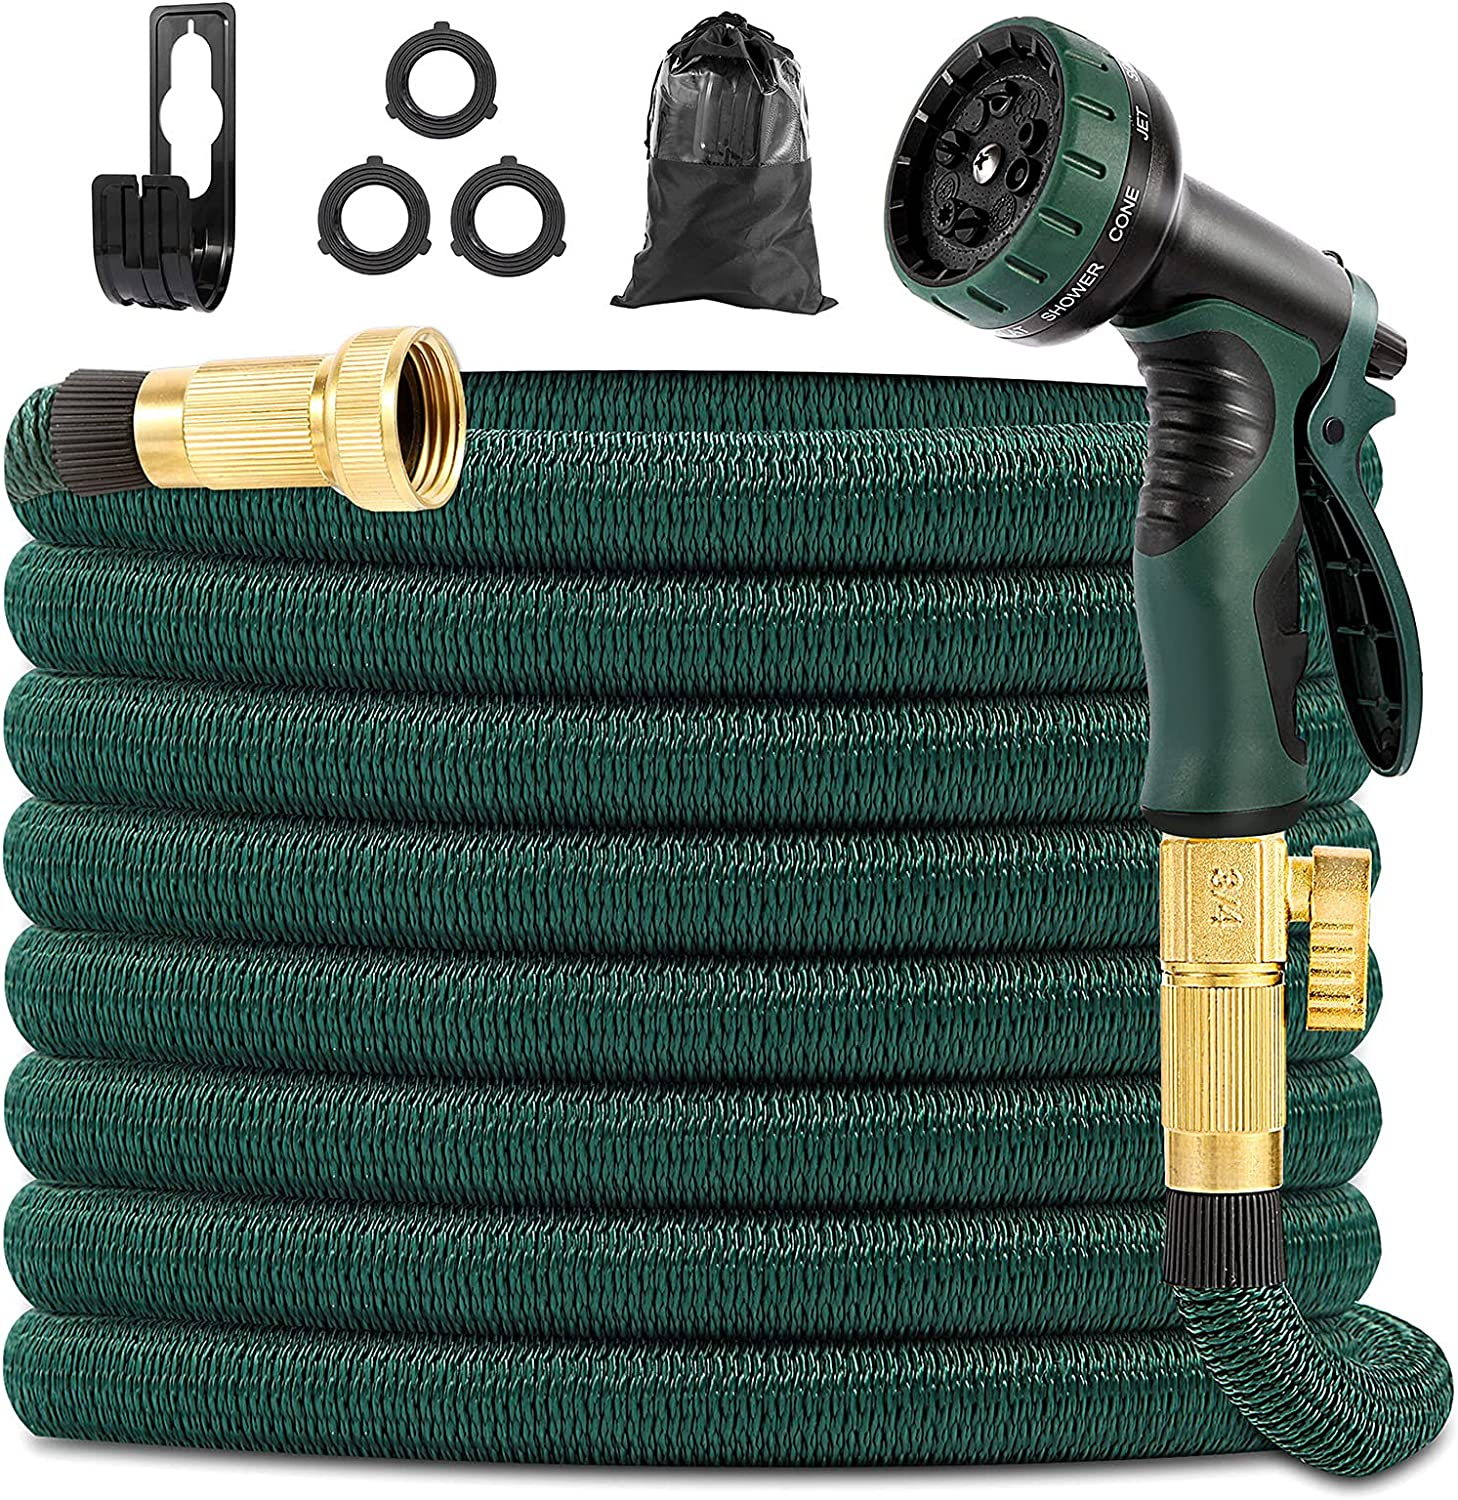 Yeenuo Expandable Garden Hose 50ft with 10 Function Nozzle- 3/4